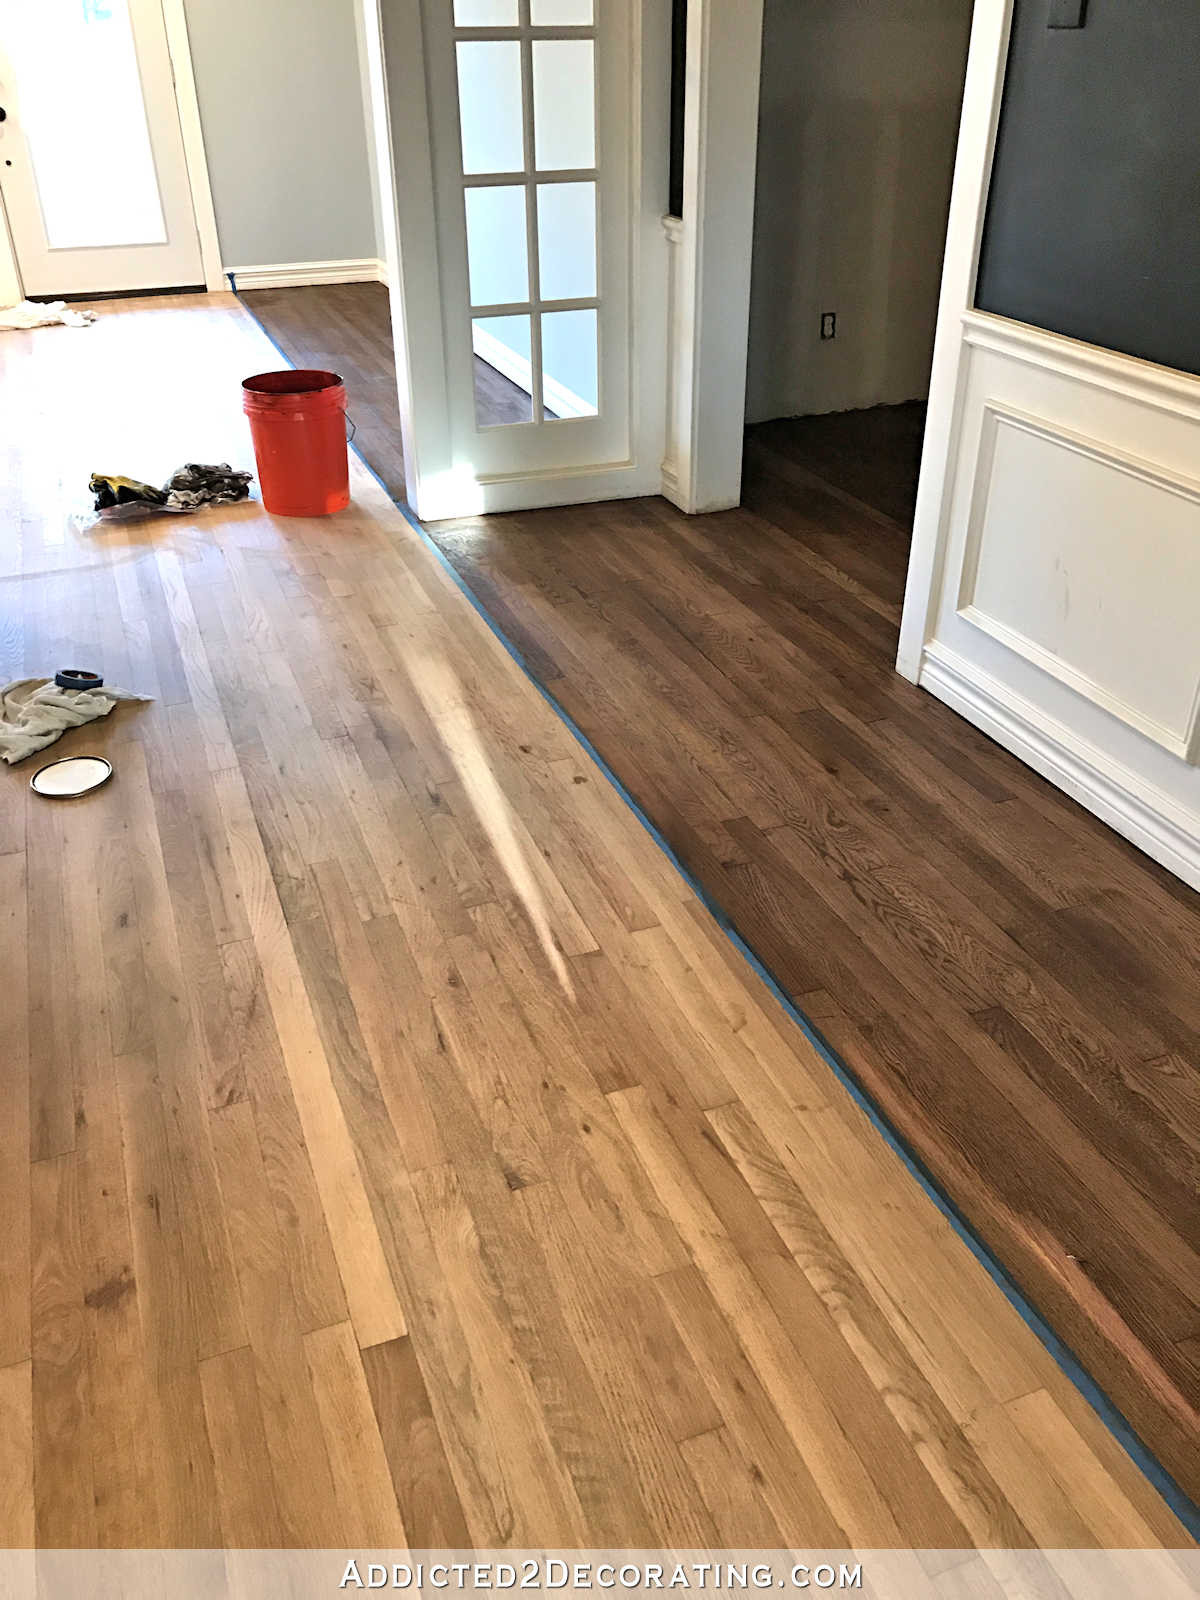 hardwood floor refinishing tacoma of how much to refinish wood floors adventures in staining my red oak pertaining to how much to refinish wood floors adventures in staining my red oak hardwood floors products